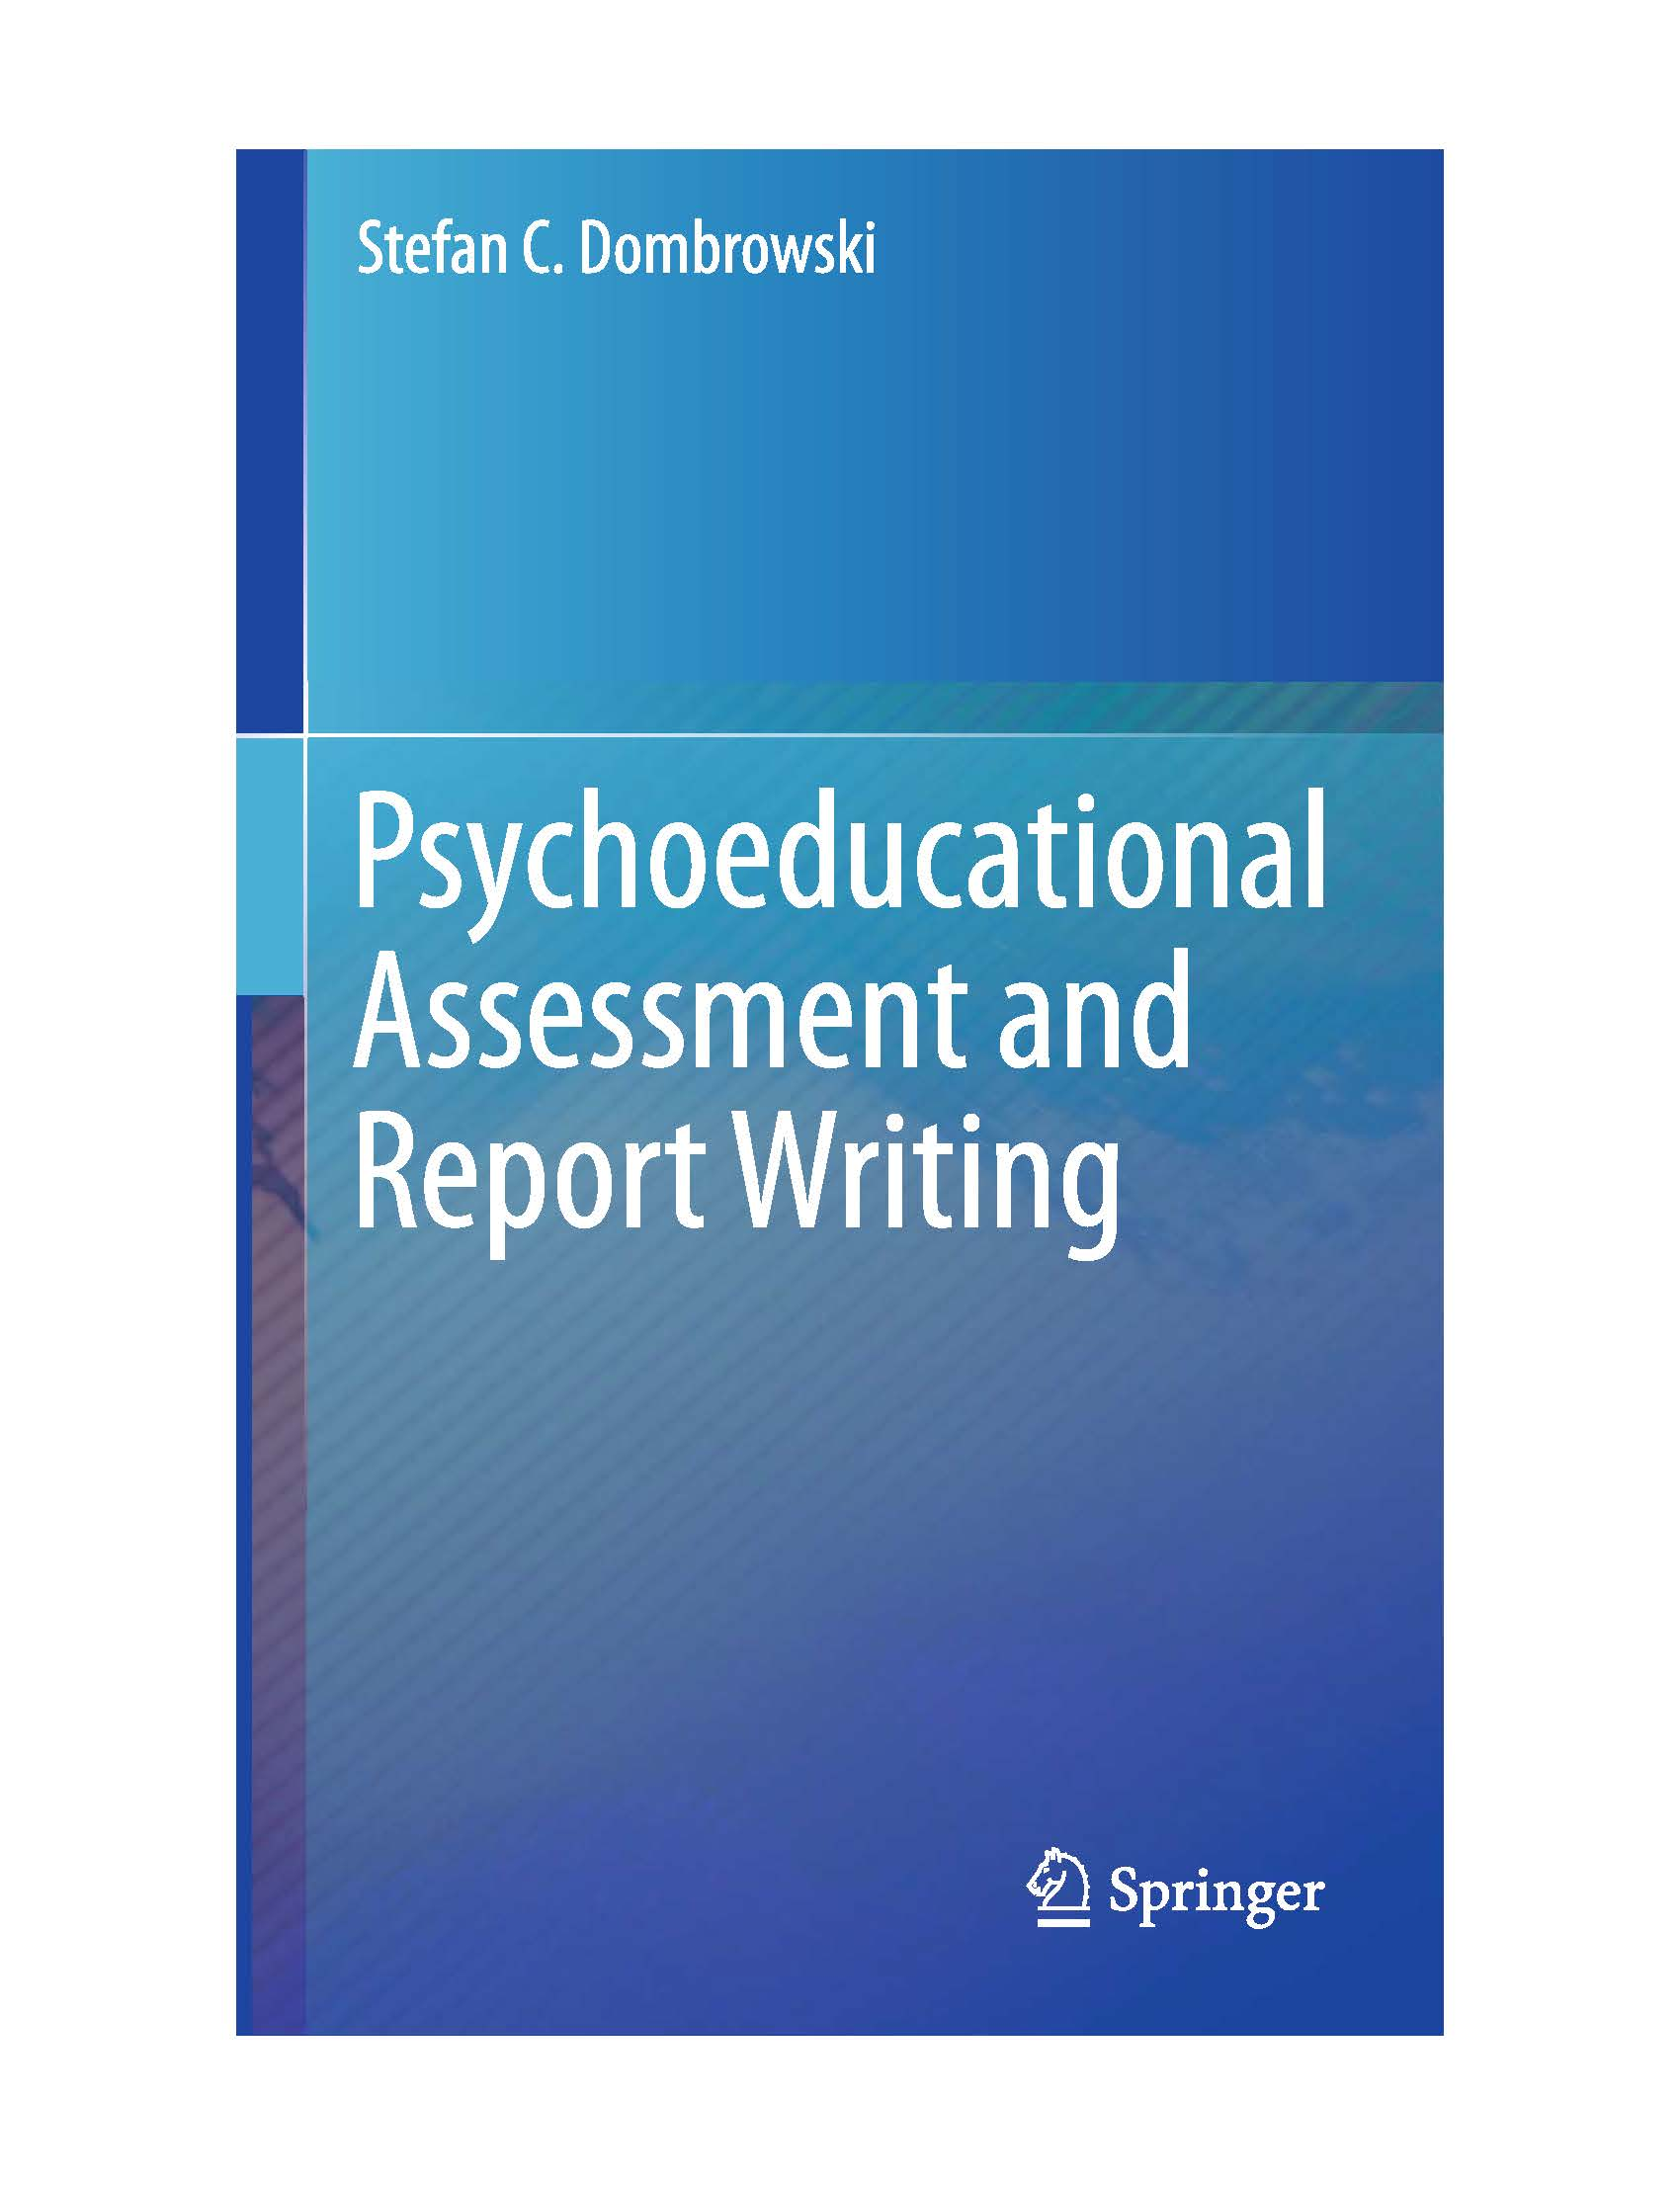 Psychoeducational Assessment and Report Writing